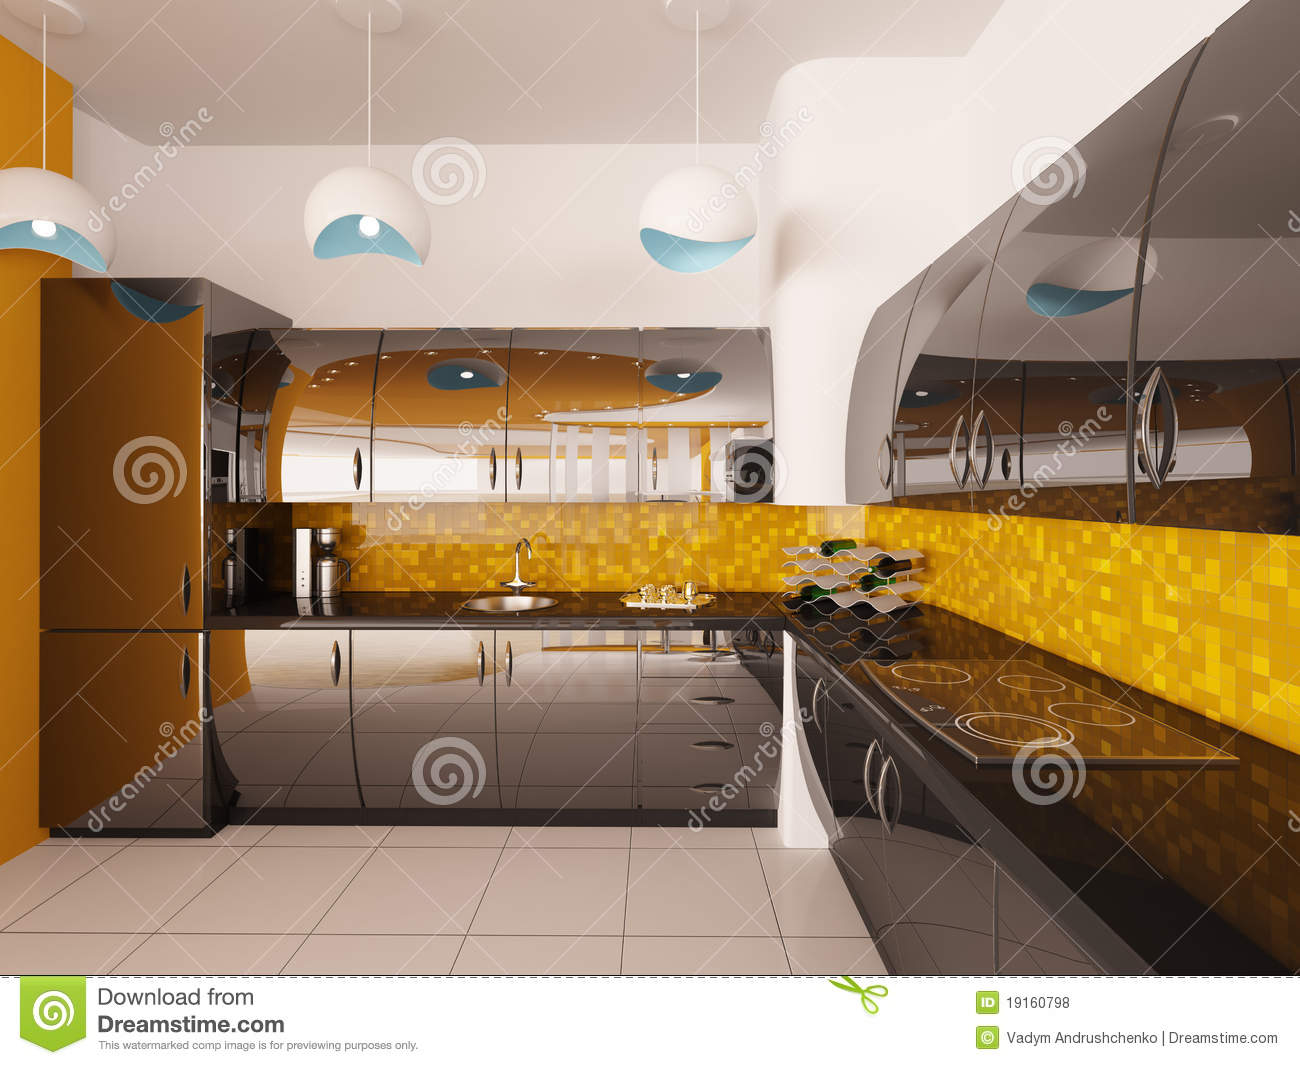 Bar Interior Design Royalty Free Stock Photo - Image: 19203345